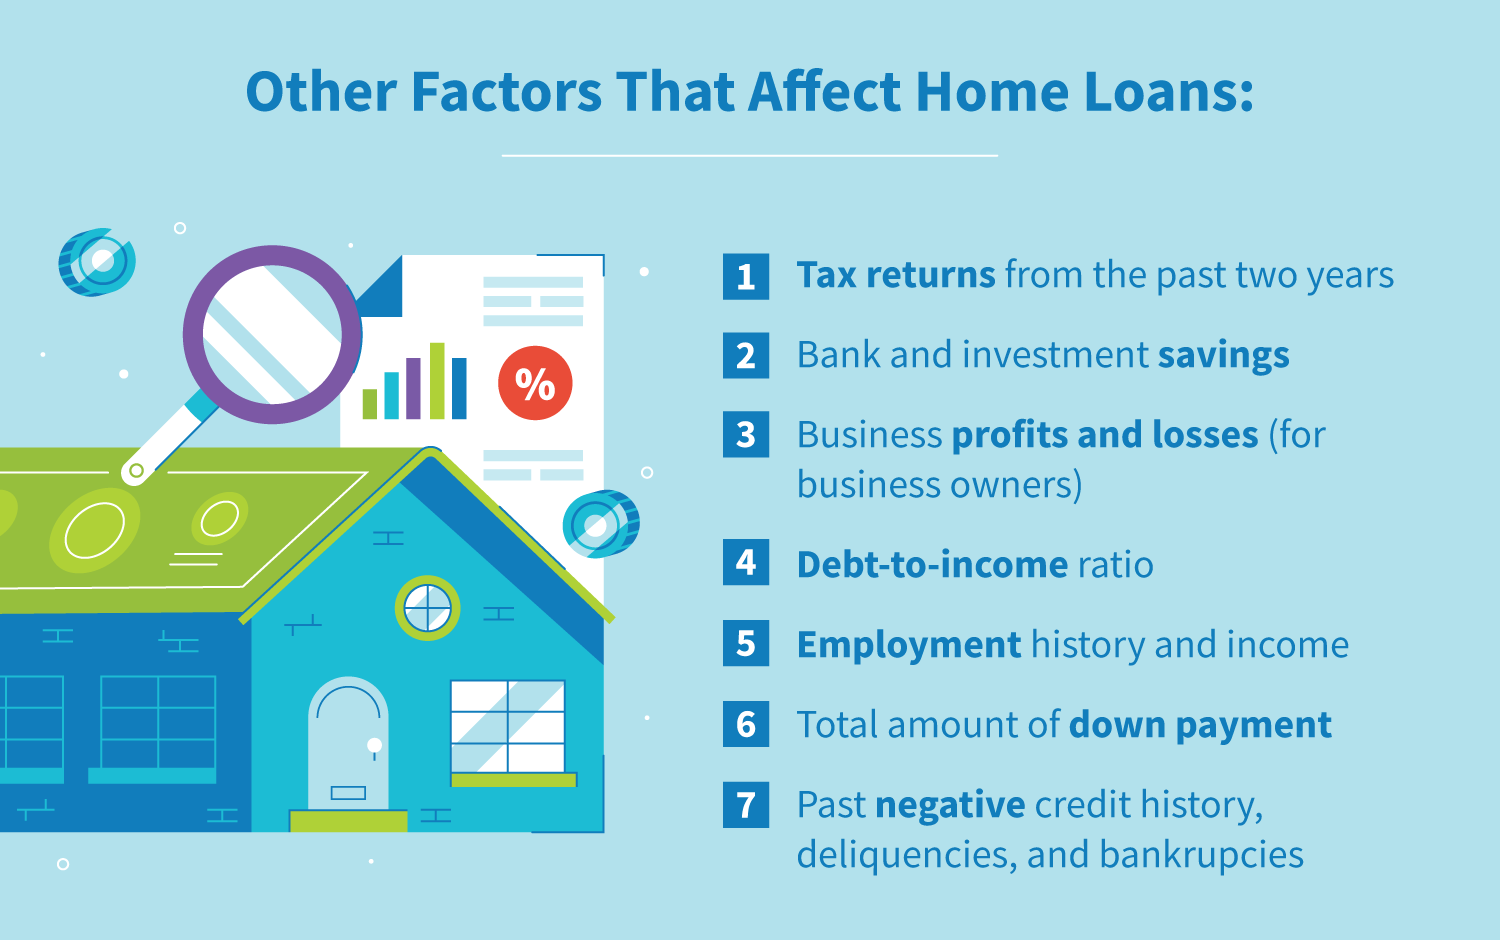 Other factors that affect home loans.